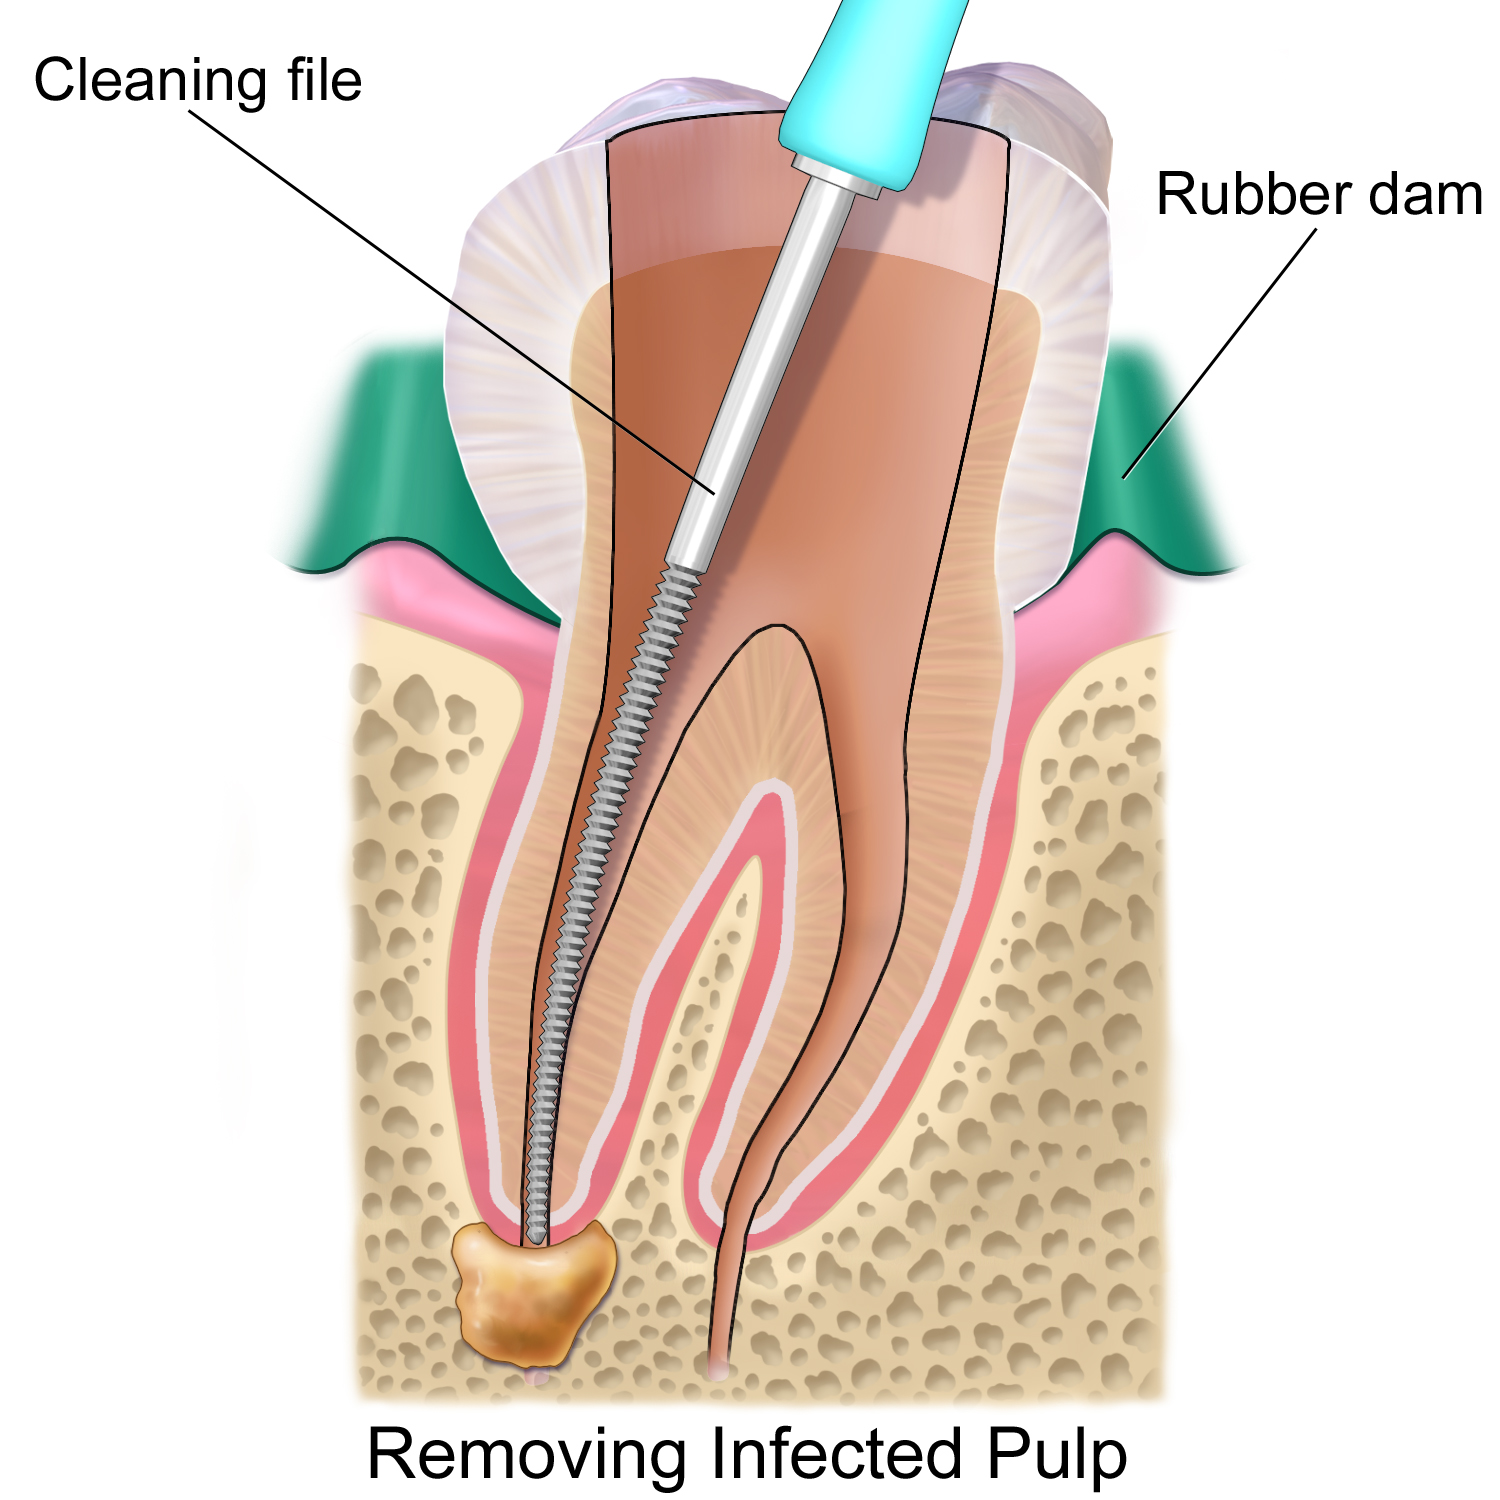 http://drmahendras.com/treatments/root-canal-treatments/